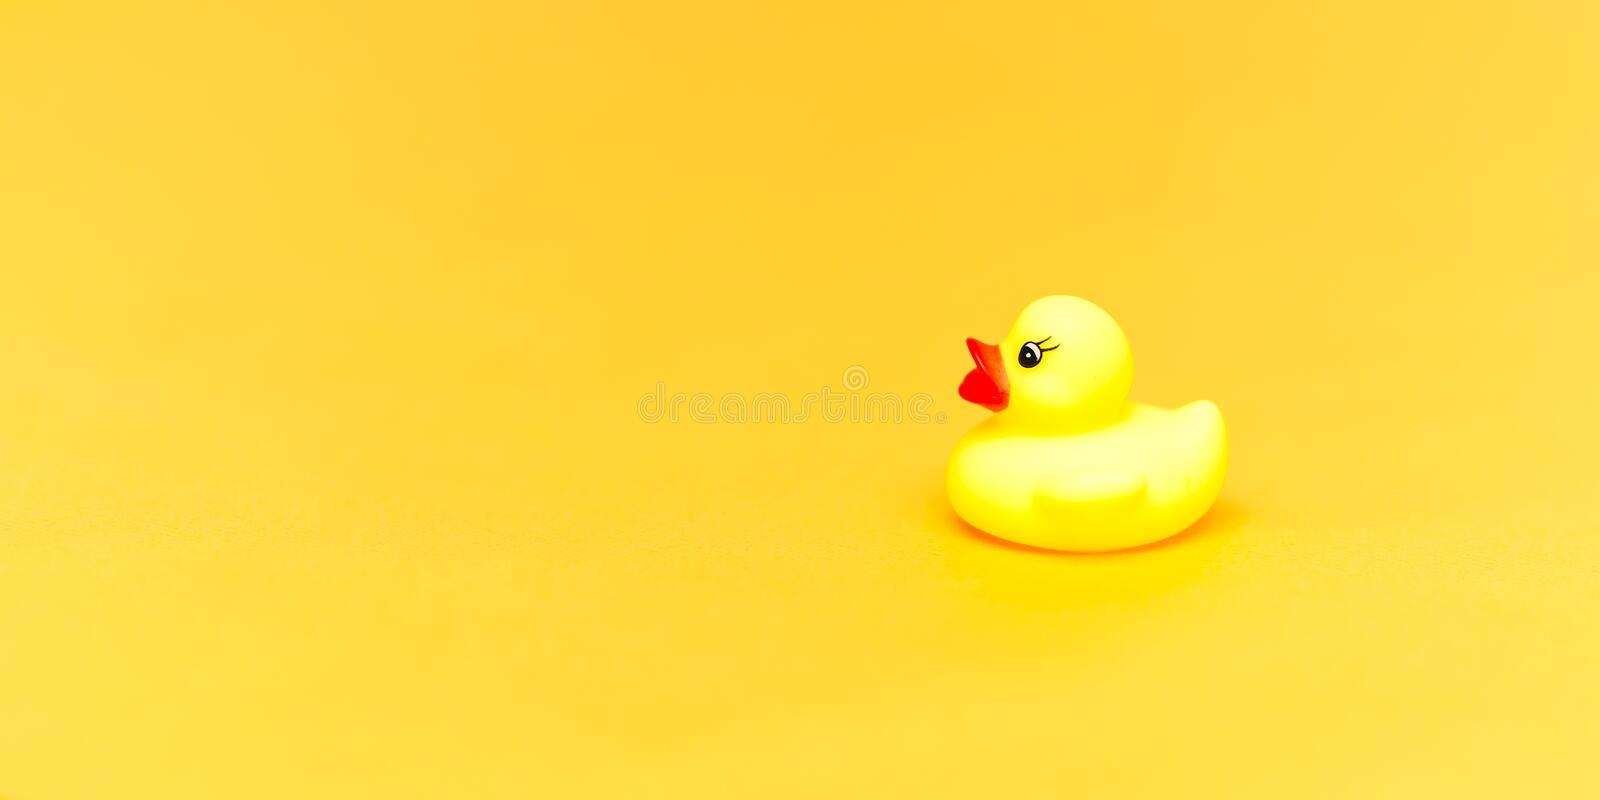 Rubber duck on yellow background. Space for text. copyspace. Minimalism. Concept stock photos